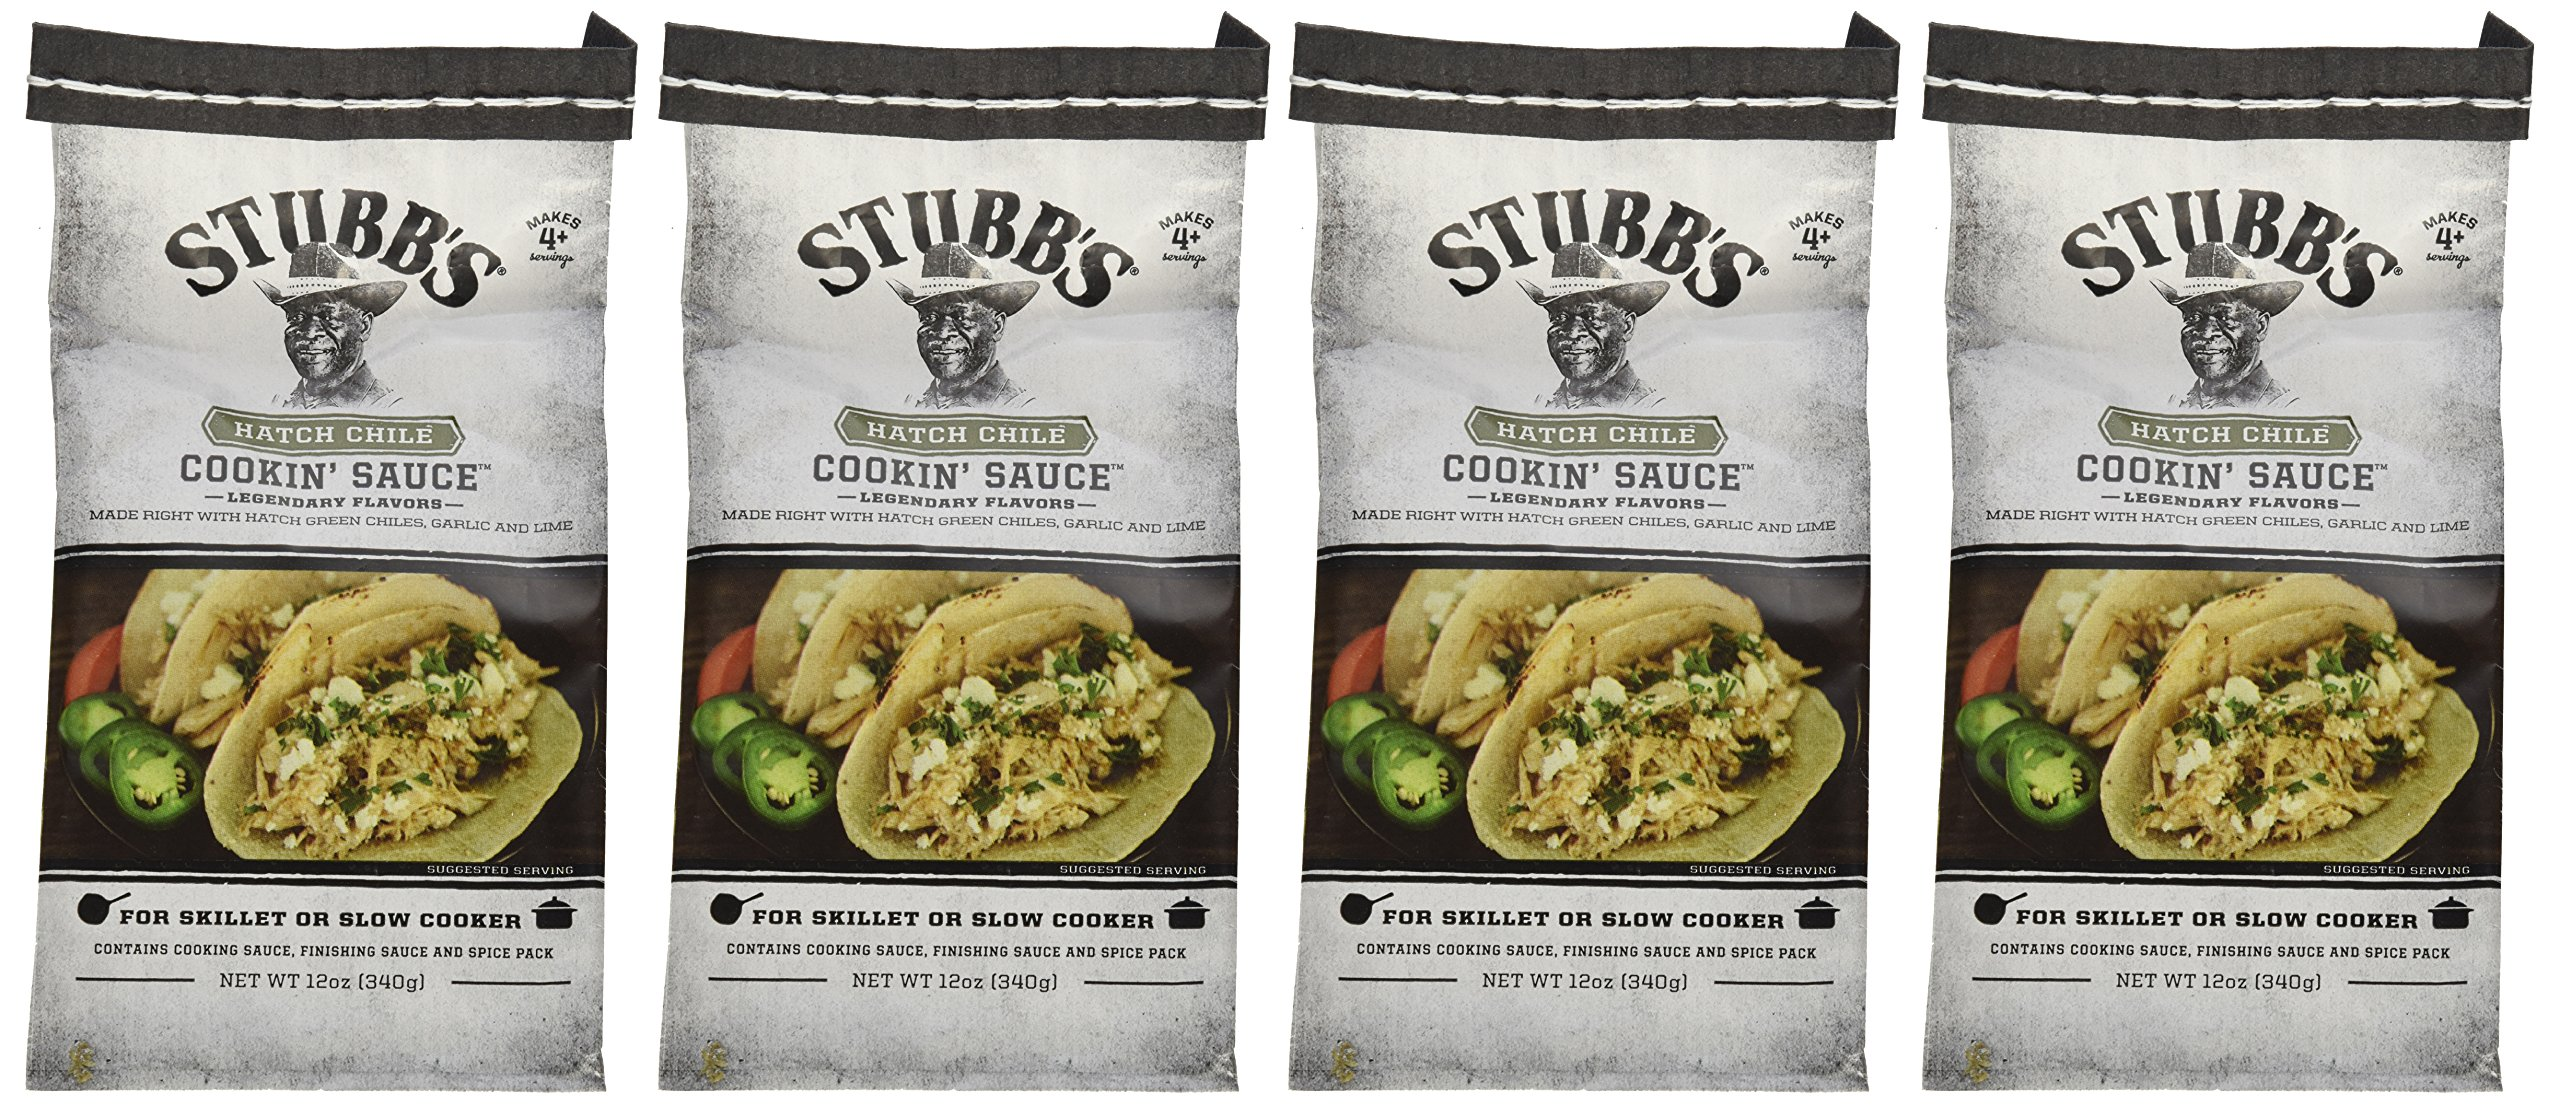 Stubb's Hatch Chili Cookin Sauce 12 oz ( 4 pack) by Stubb's (Image #1)